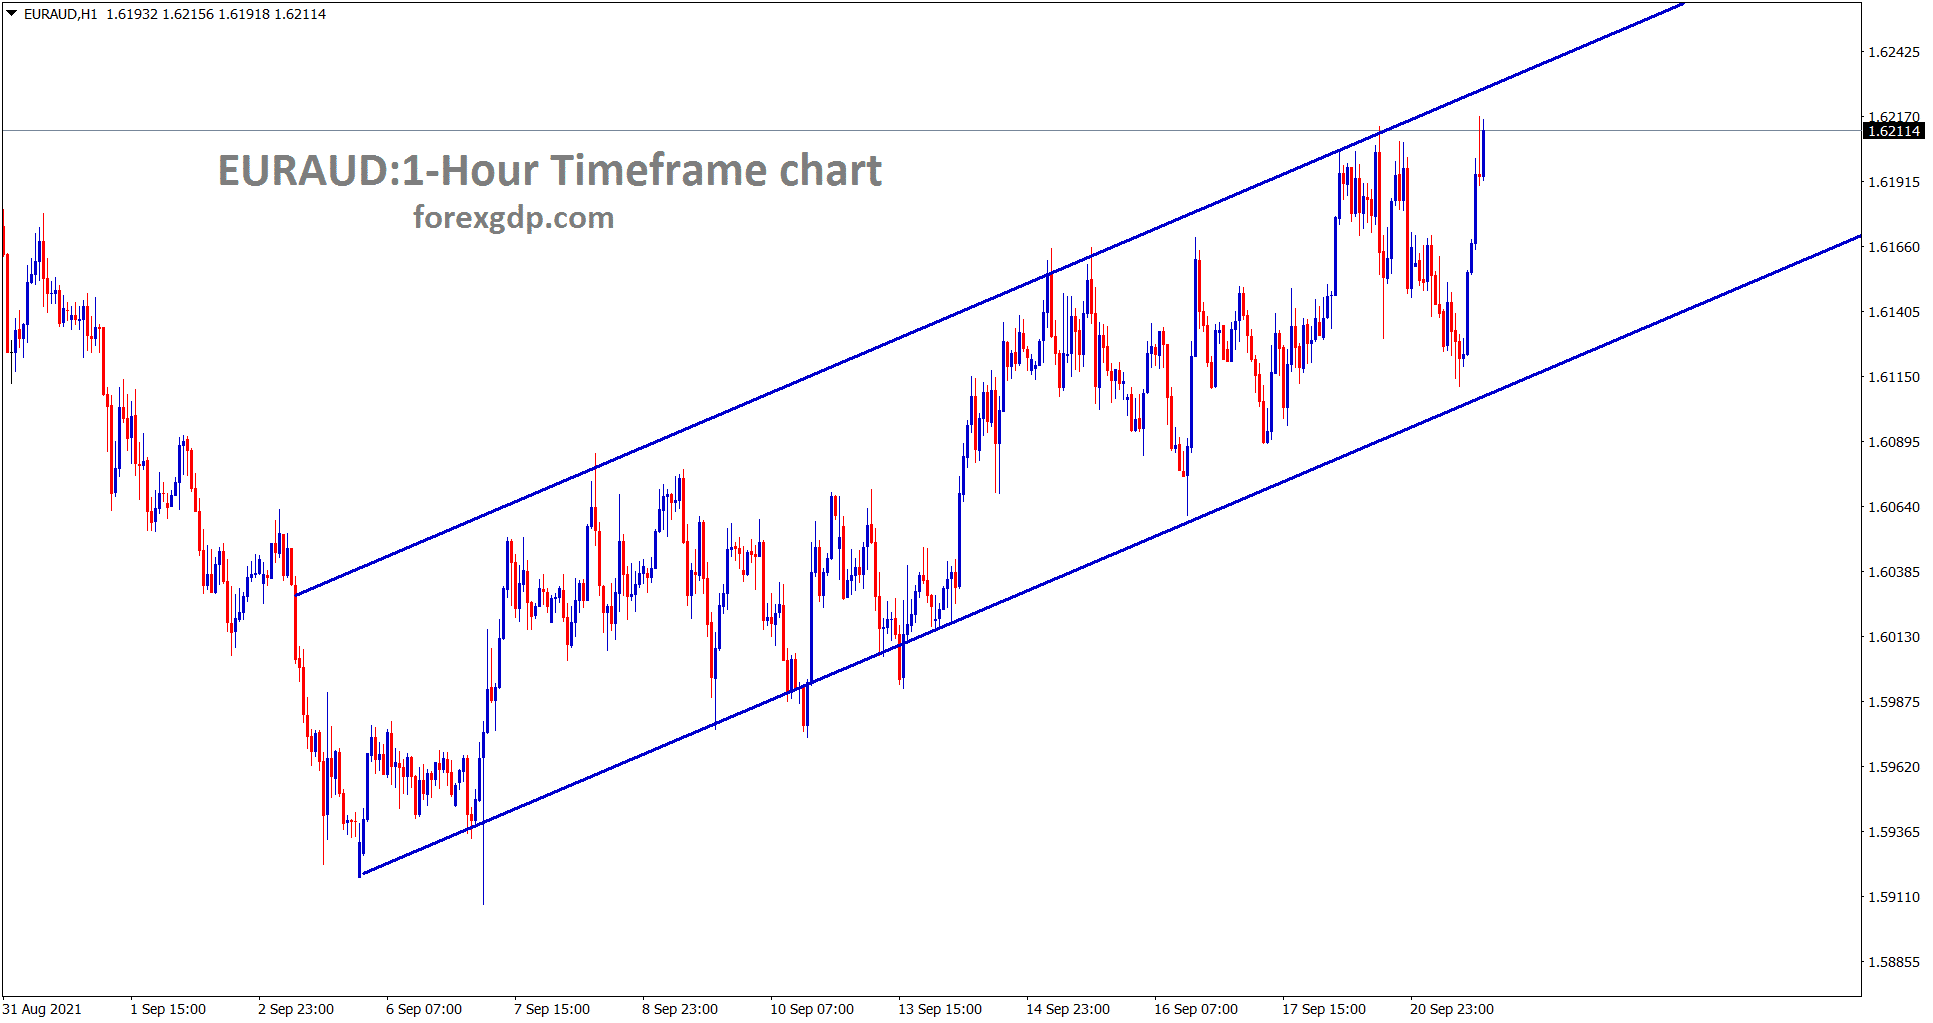 EURAUD is moving in an Ascending channel for a long time